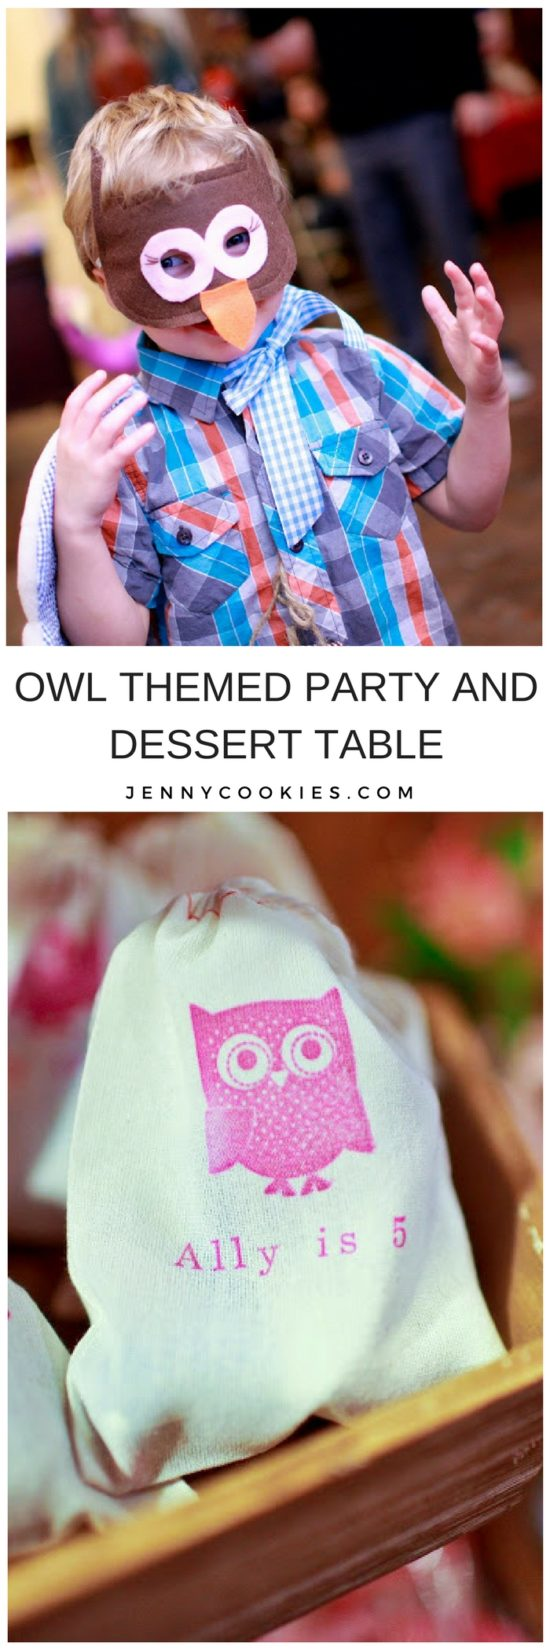 Ally's 5th Birthday | 5th birthday party ideas | owl themed birthday party | owl themed dessert table | girl birthday party ideas | kids birthday parties | diy birthday party ideas | diy dessert tables || JennyCookies.com #owlpartyideas #kidsbirthday #desserttables